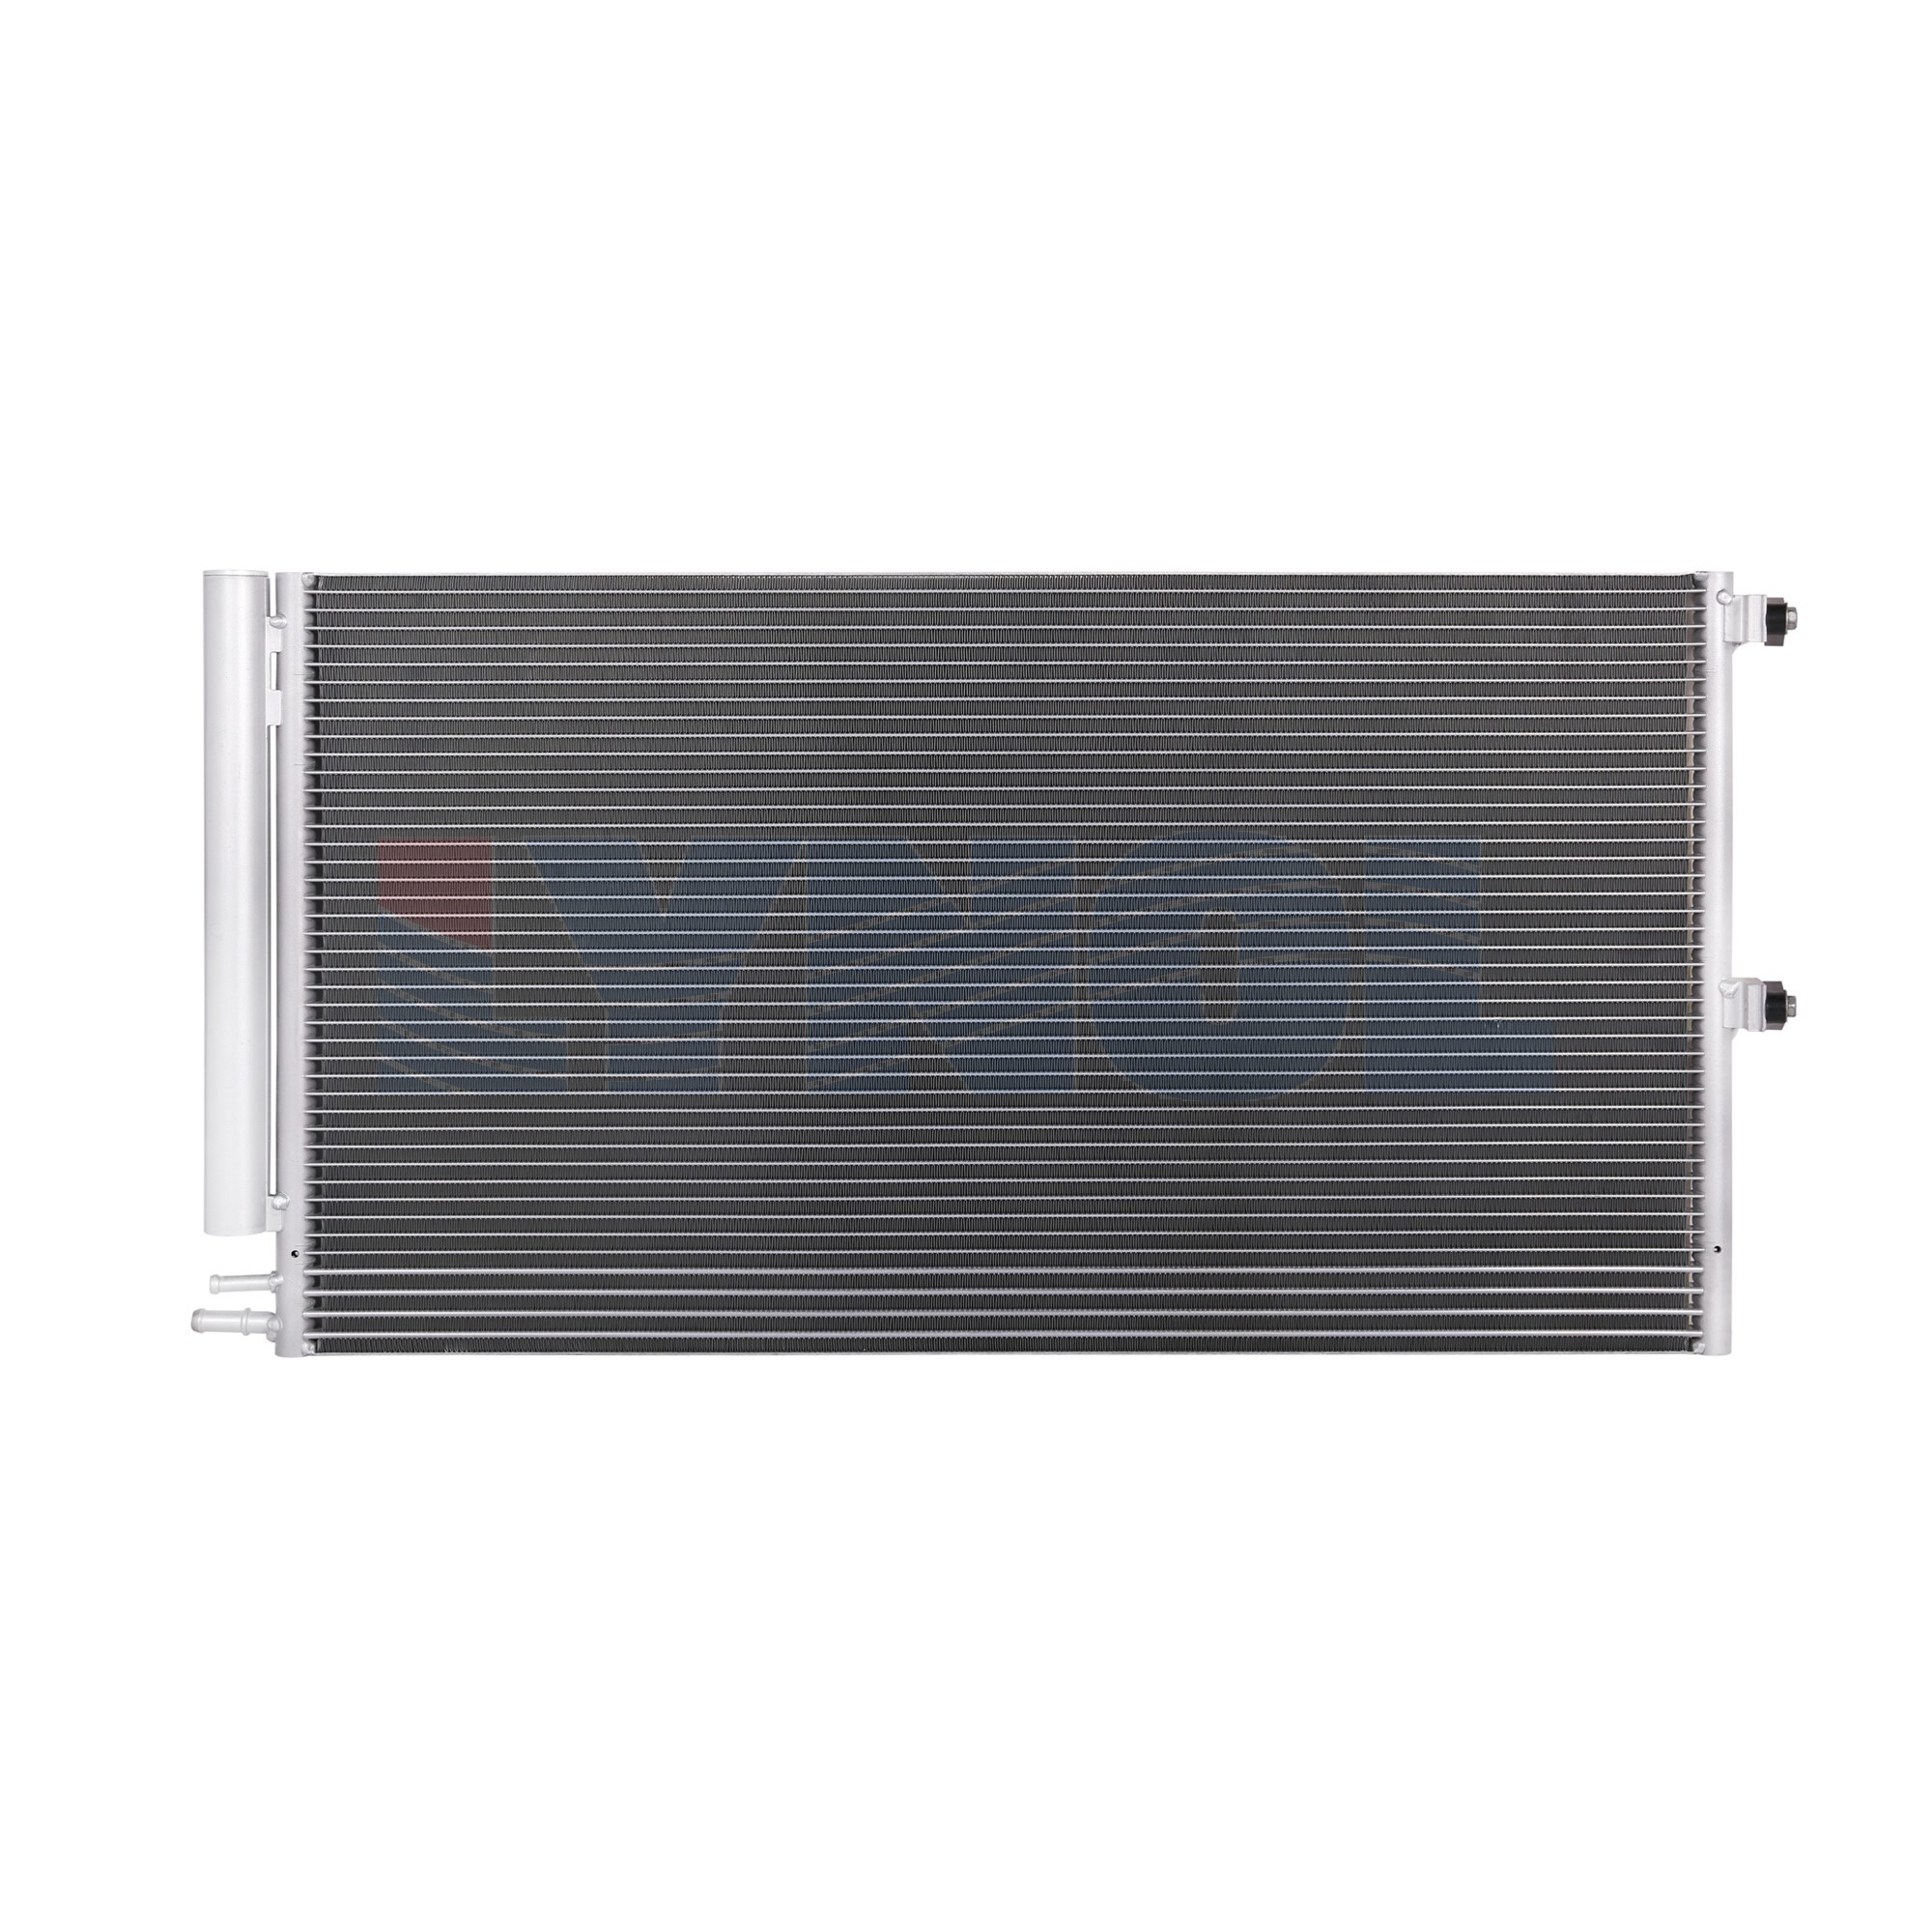 AC3618 - AC Condensers  - 08-14 Ford Expedition / F-150, Lincoln Navigator